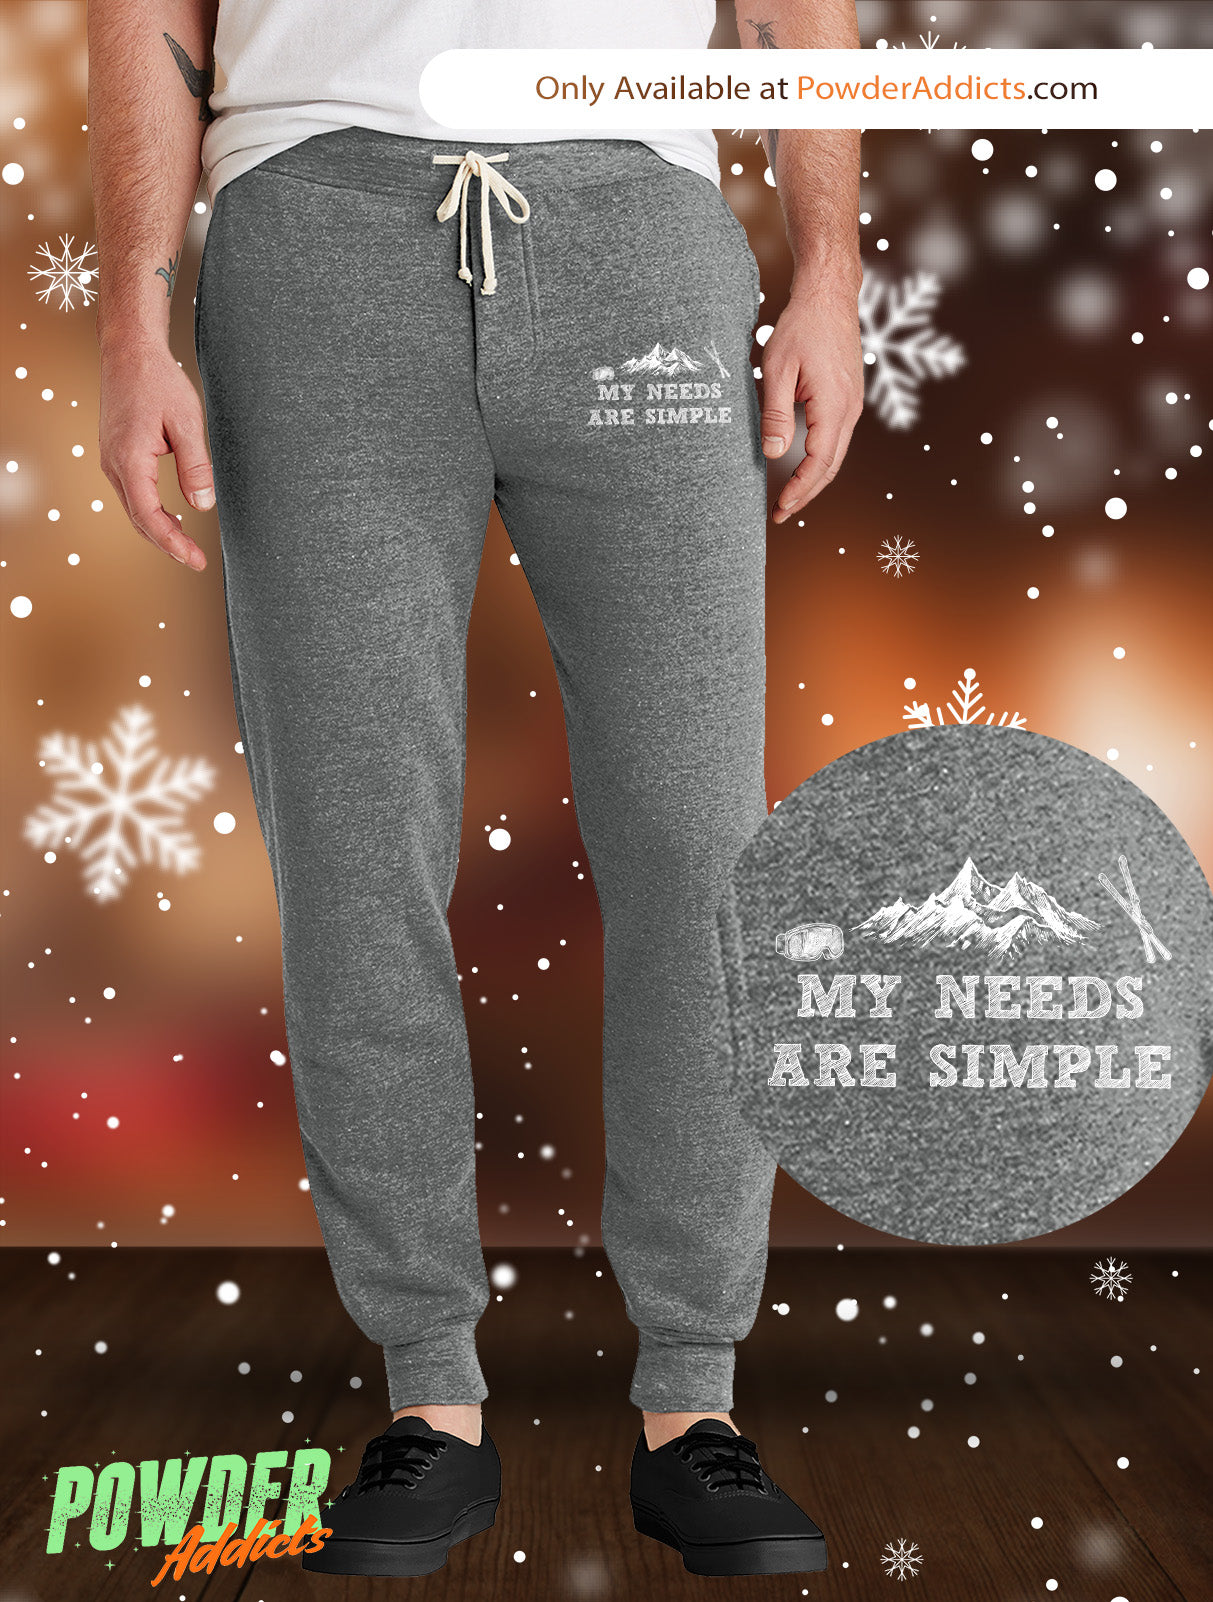 My Needs Are Simple Ski Men's Adult Fleece Joggers - Powderaddicts